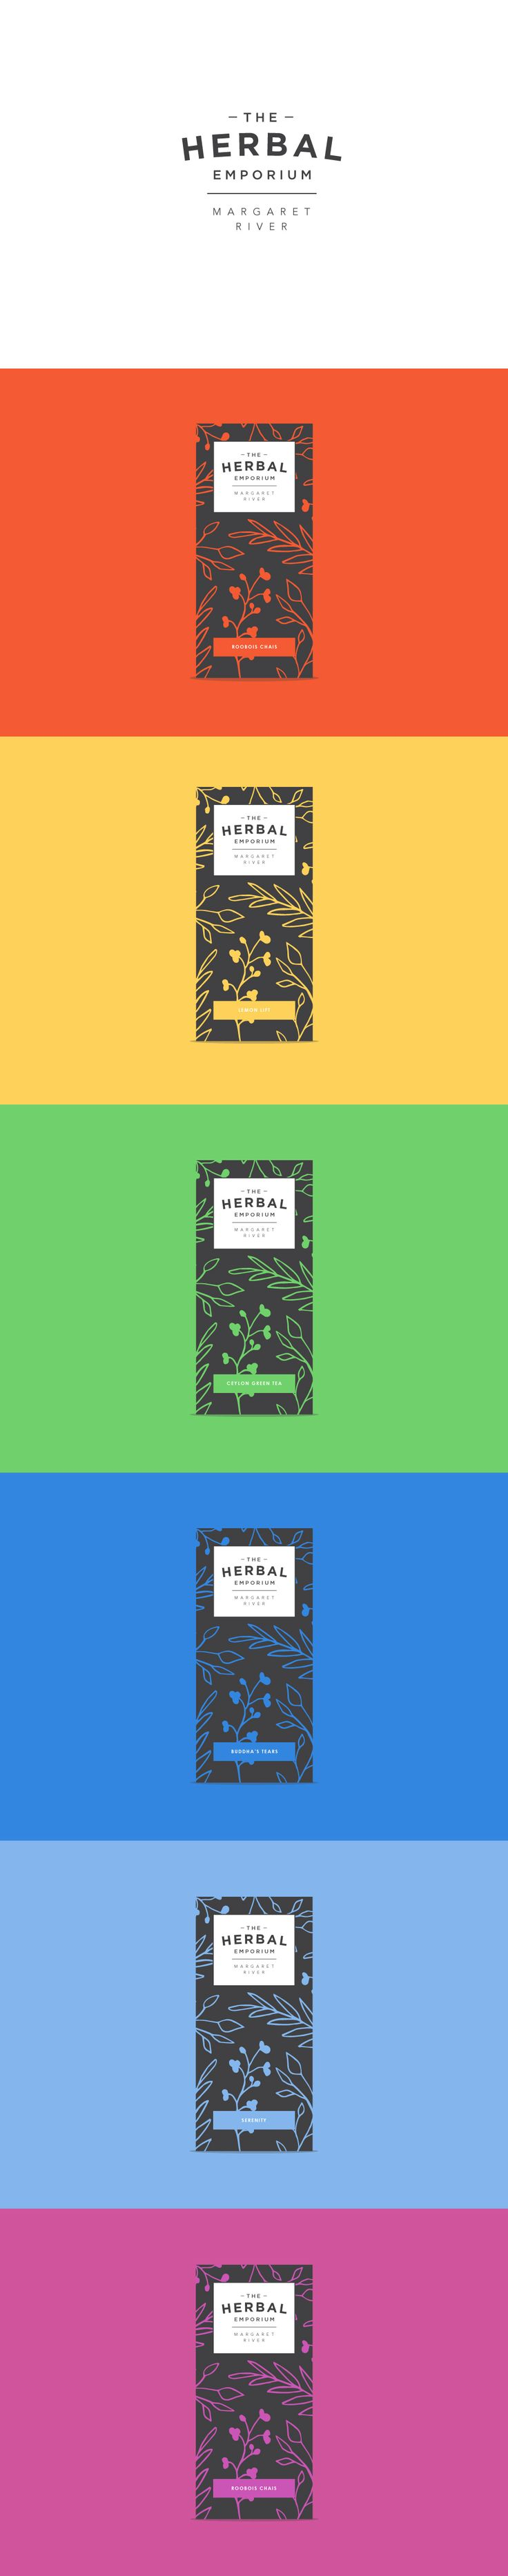 Unused branding concepts for The Herbal Emporium, a herbal tea brand in Margaret River. #design #brand #logo #herbaltea #tea #packaging